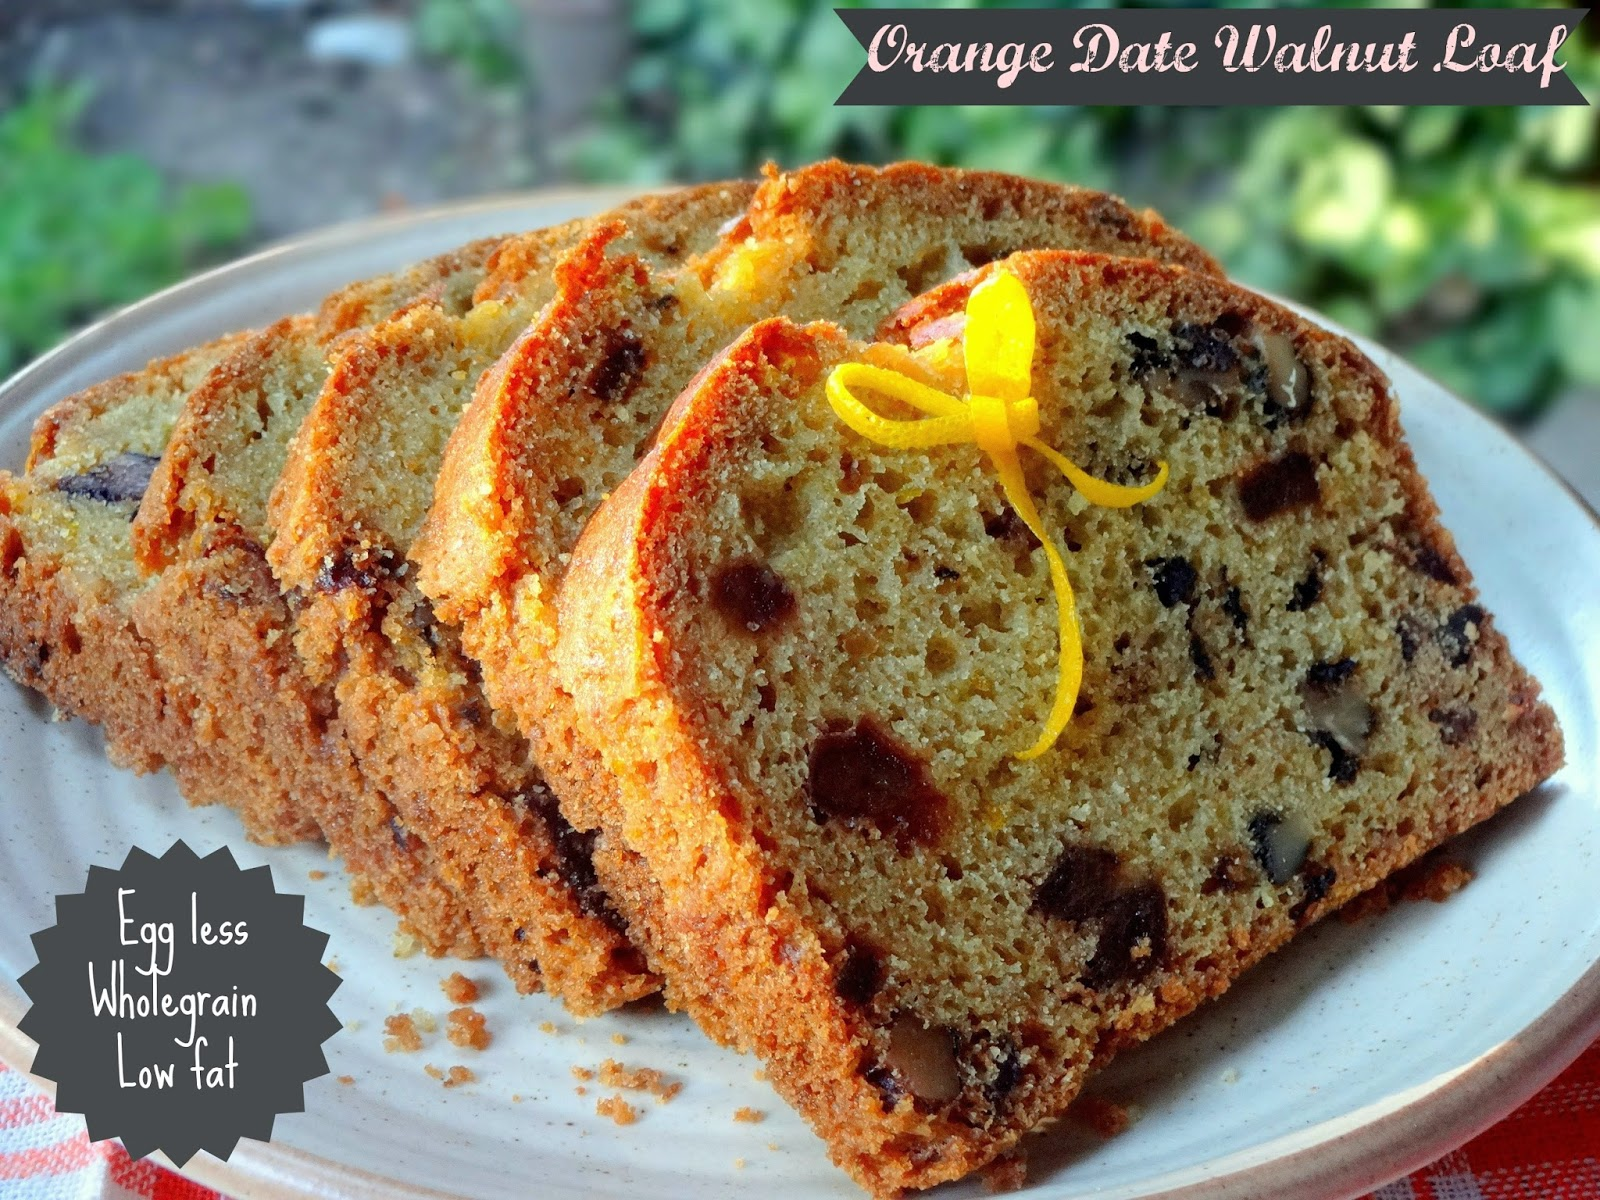 Low Calorie Loaf Cake Recipes: Egg Less, Wholegrain And Low Fat